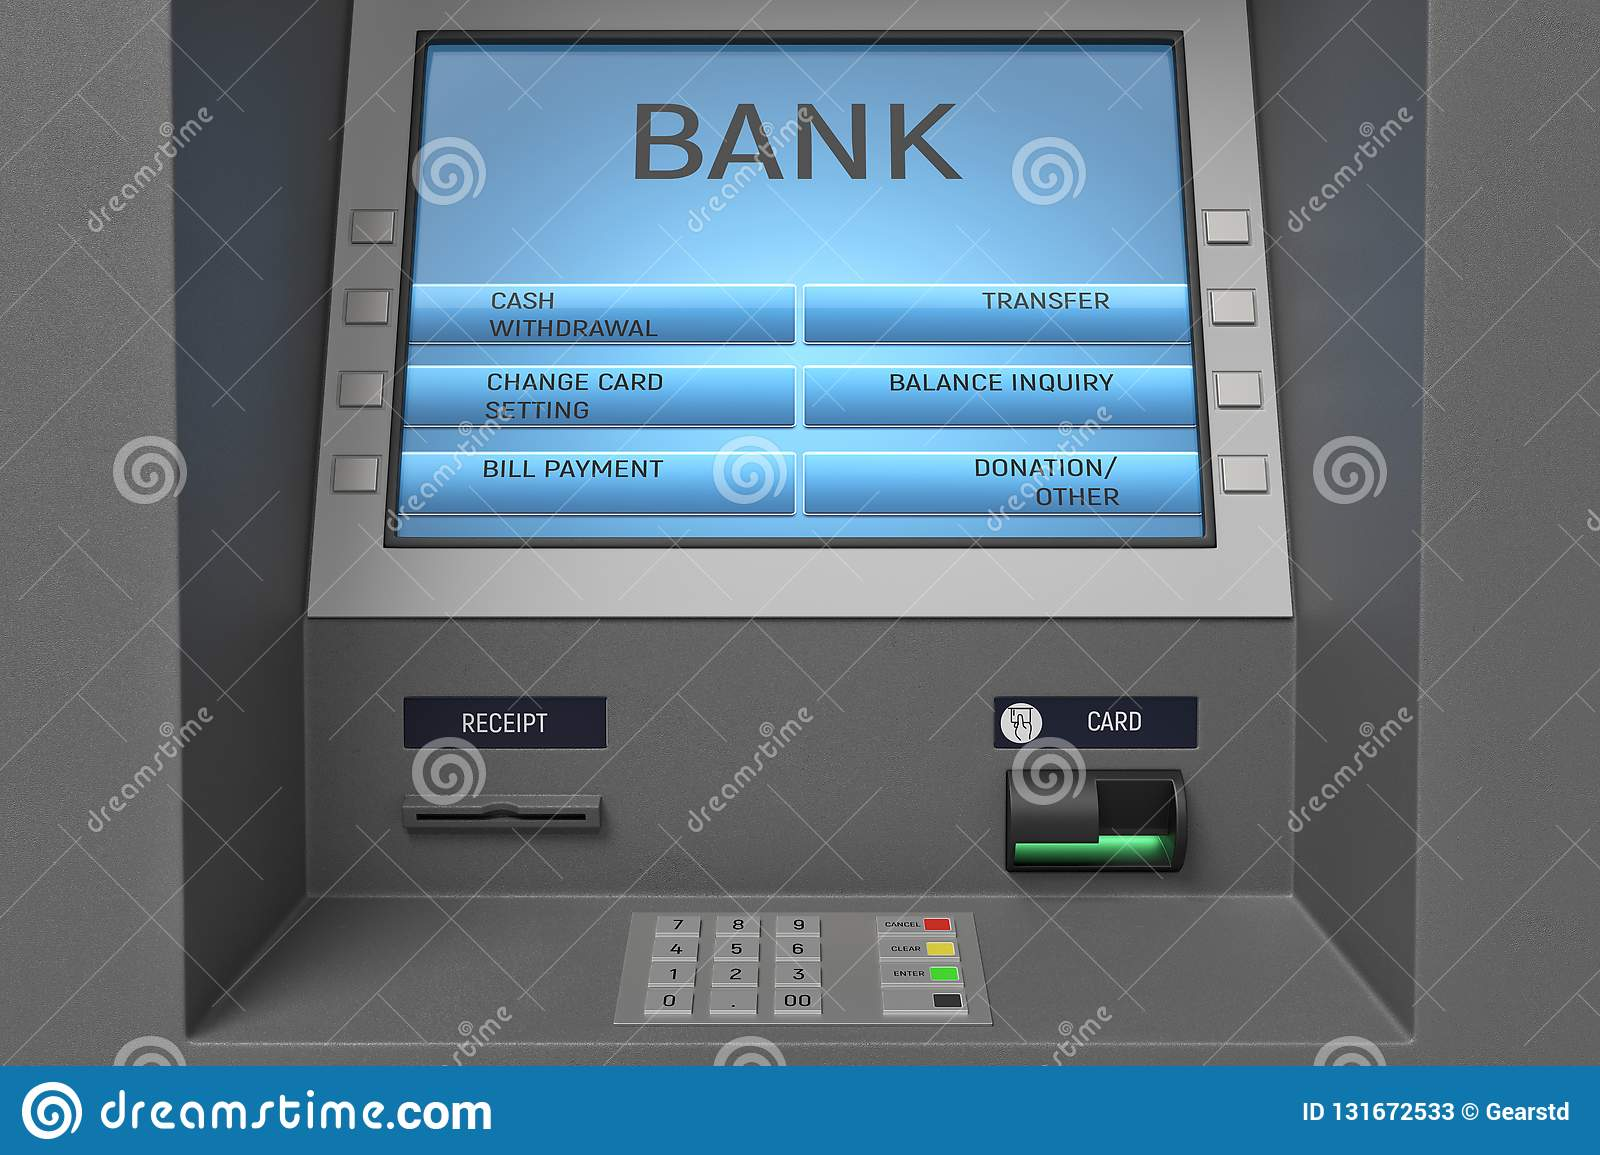 3d Rendering Of An ATM Machine With Its Screen And Button Panel In A